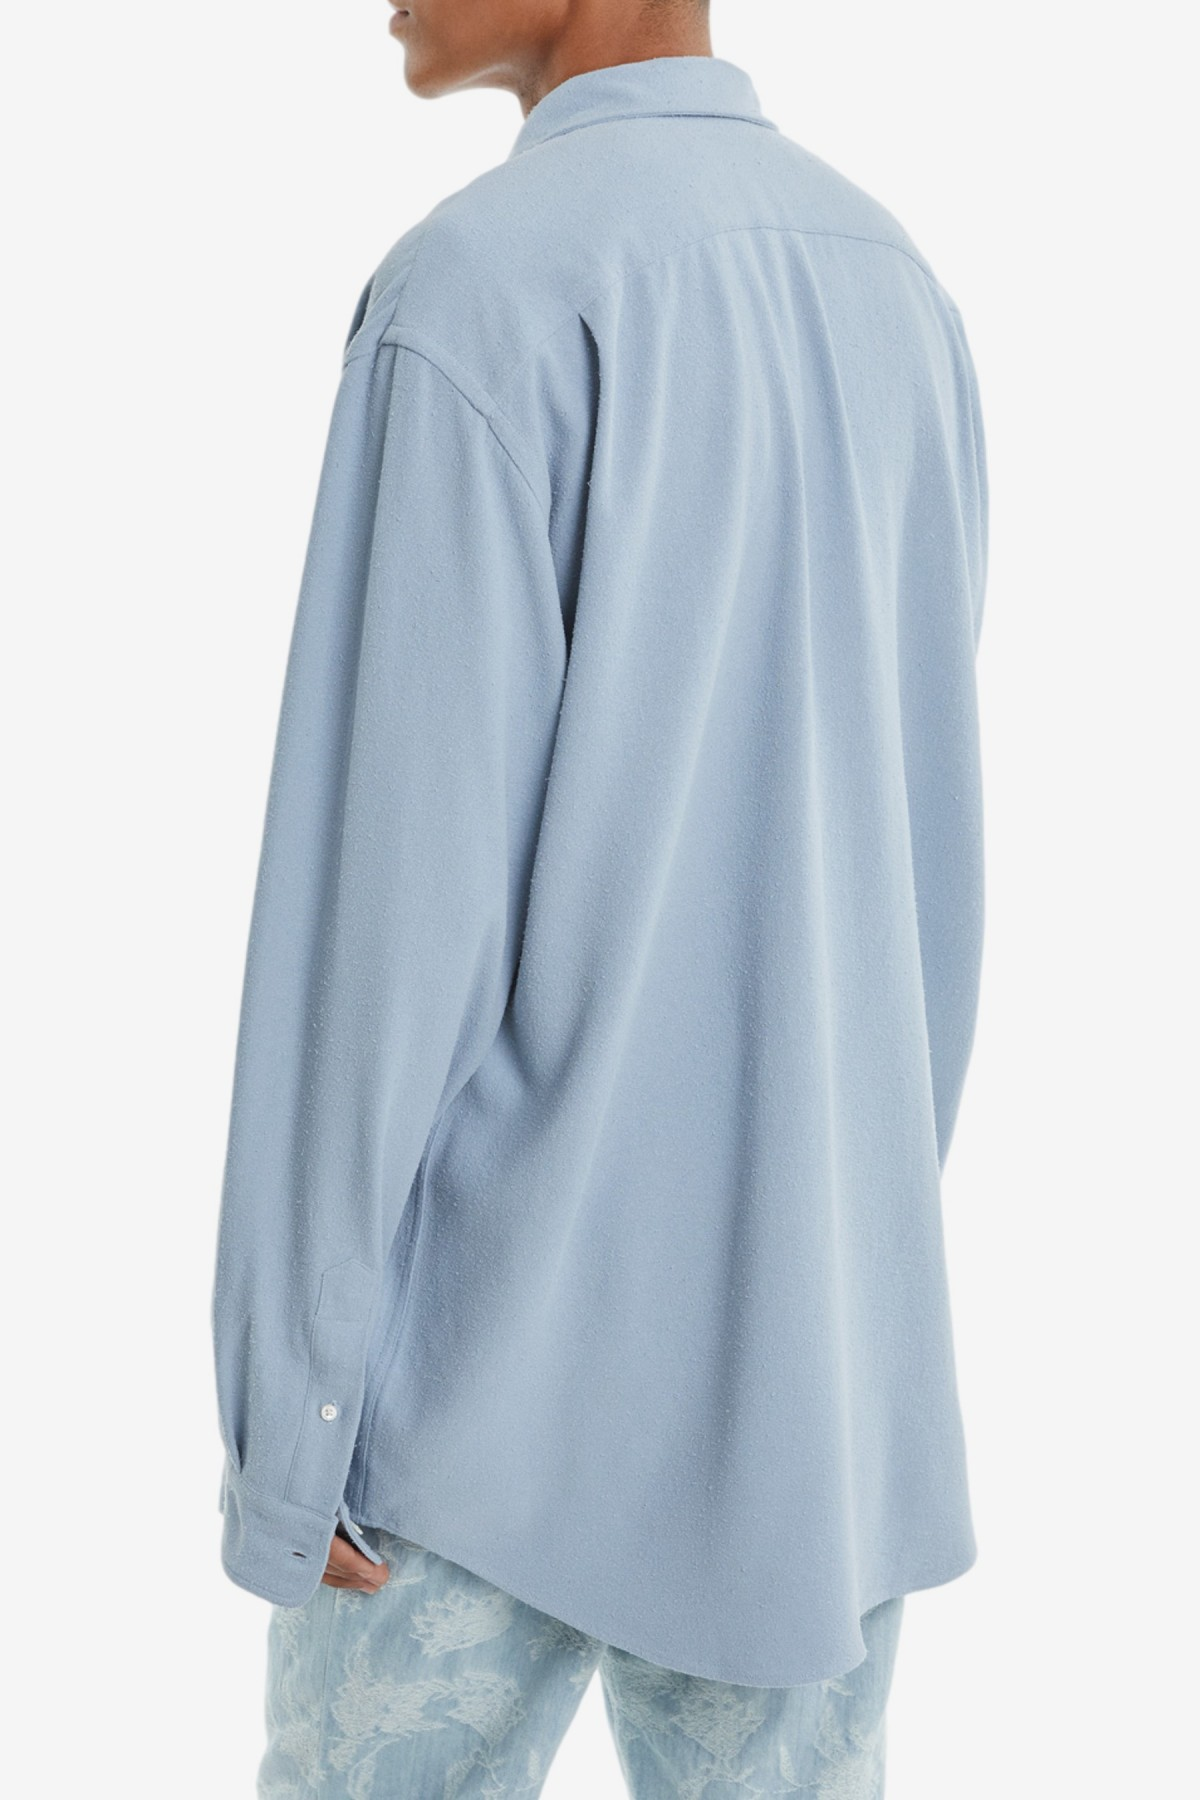 Schnayderman's Shirt Non-Binary Raw Silk GD in Dusty Blue